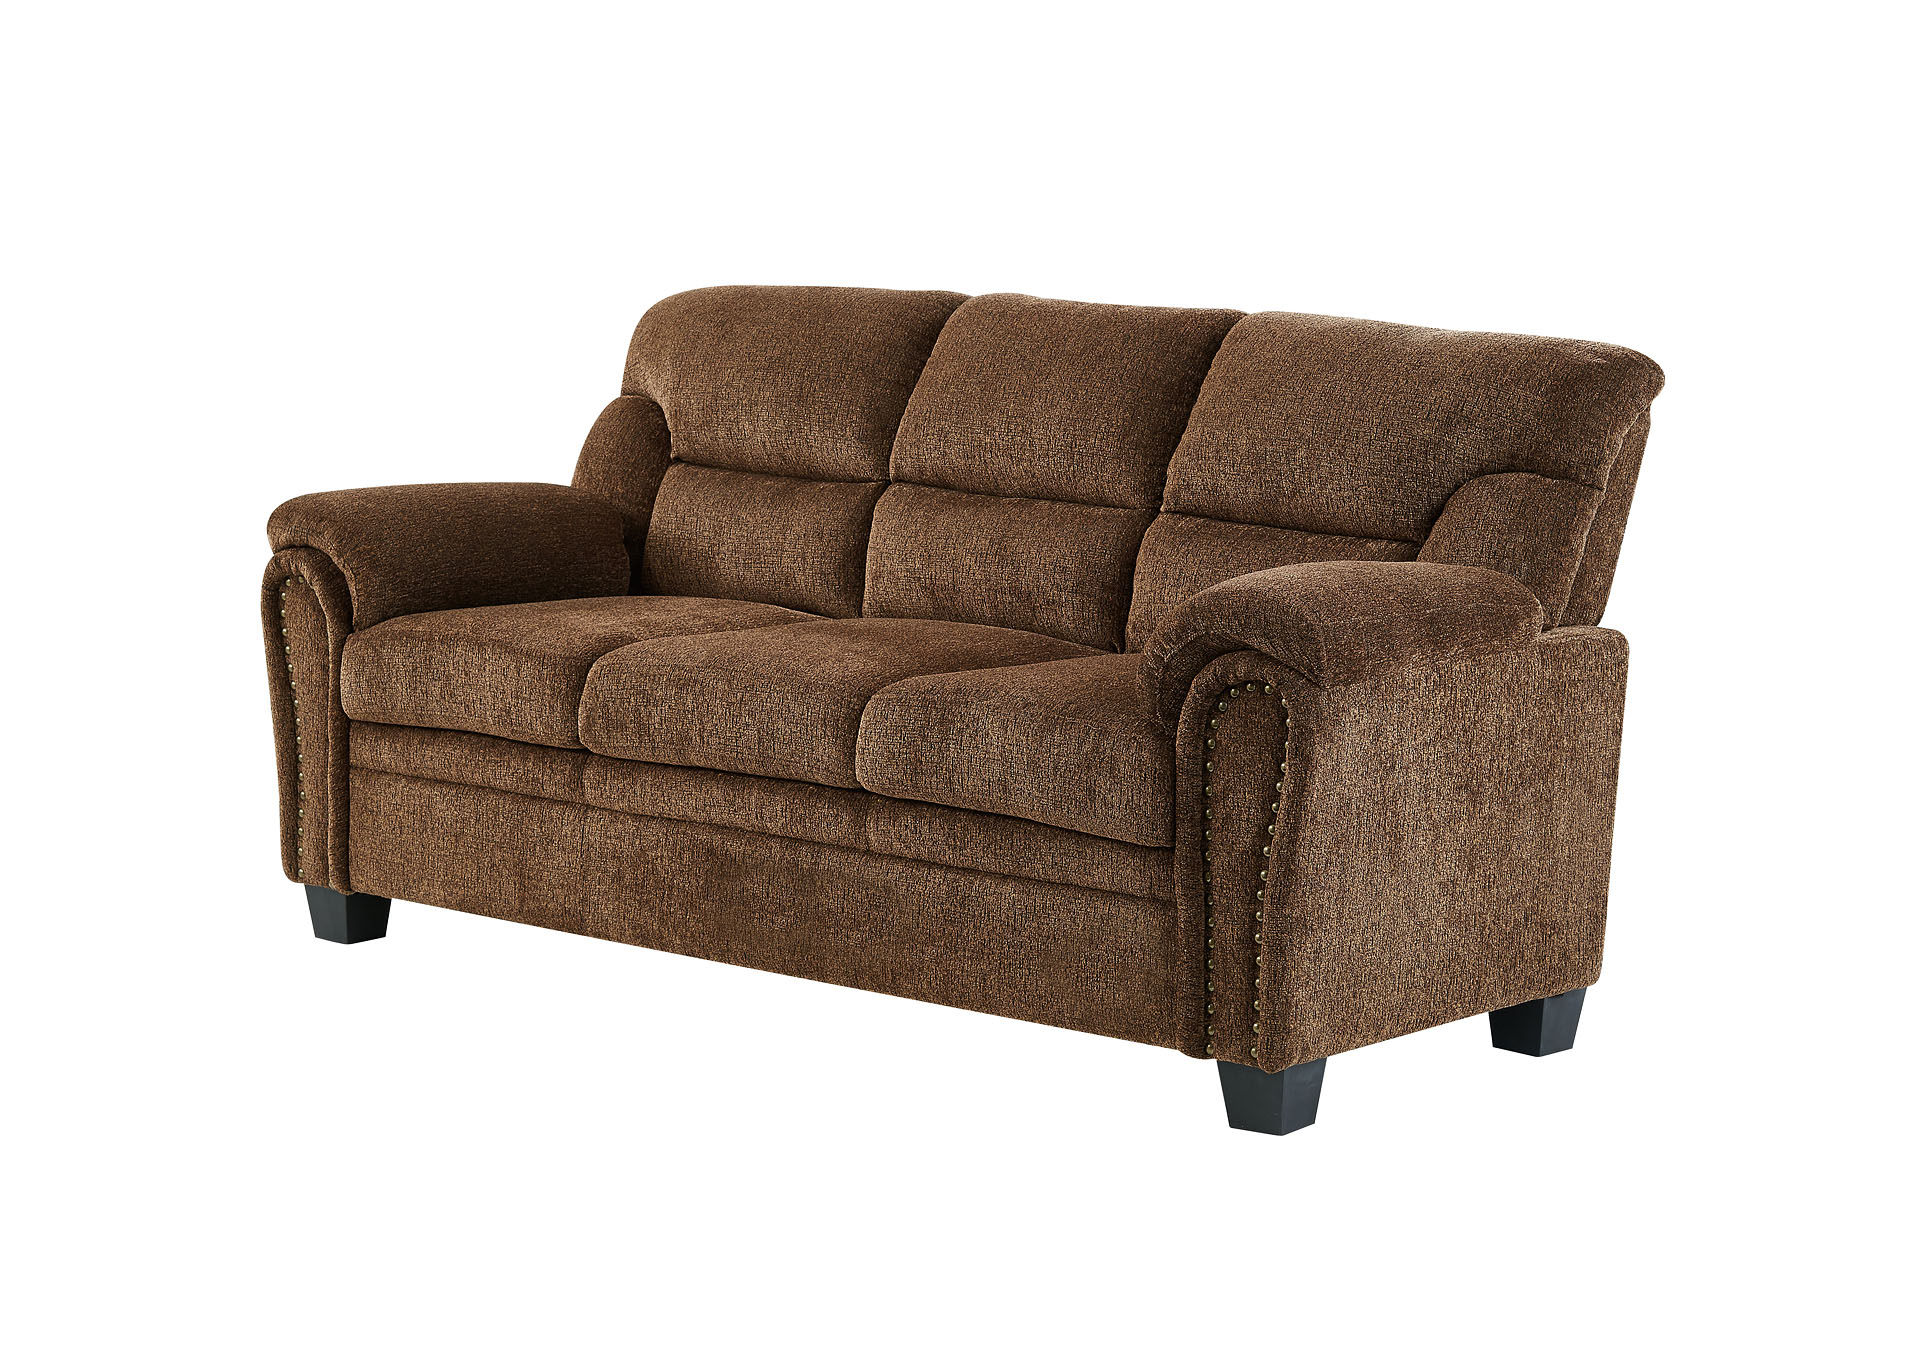 Excellent Furniture House Dover Nj Jasmine Tobacco Sofa Alphanode Cool Chair Designs And Ideas Alphanodeonline